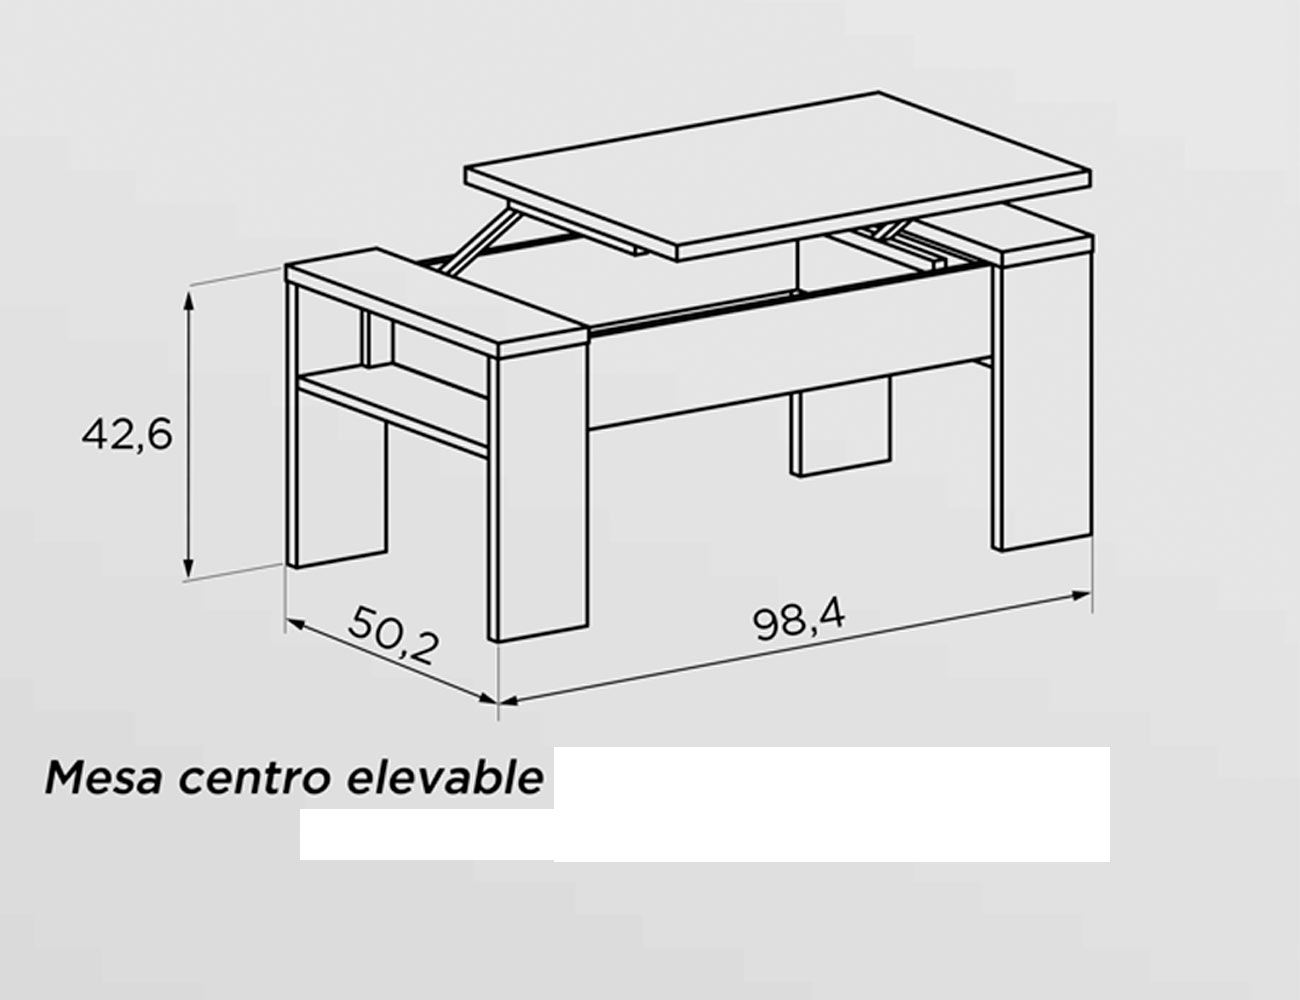 Mesa de comedor extensible 138 198 cm 19538 factory for Mesa centro elevable